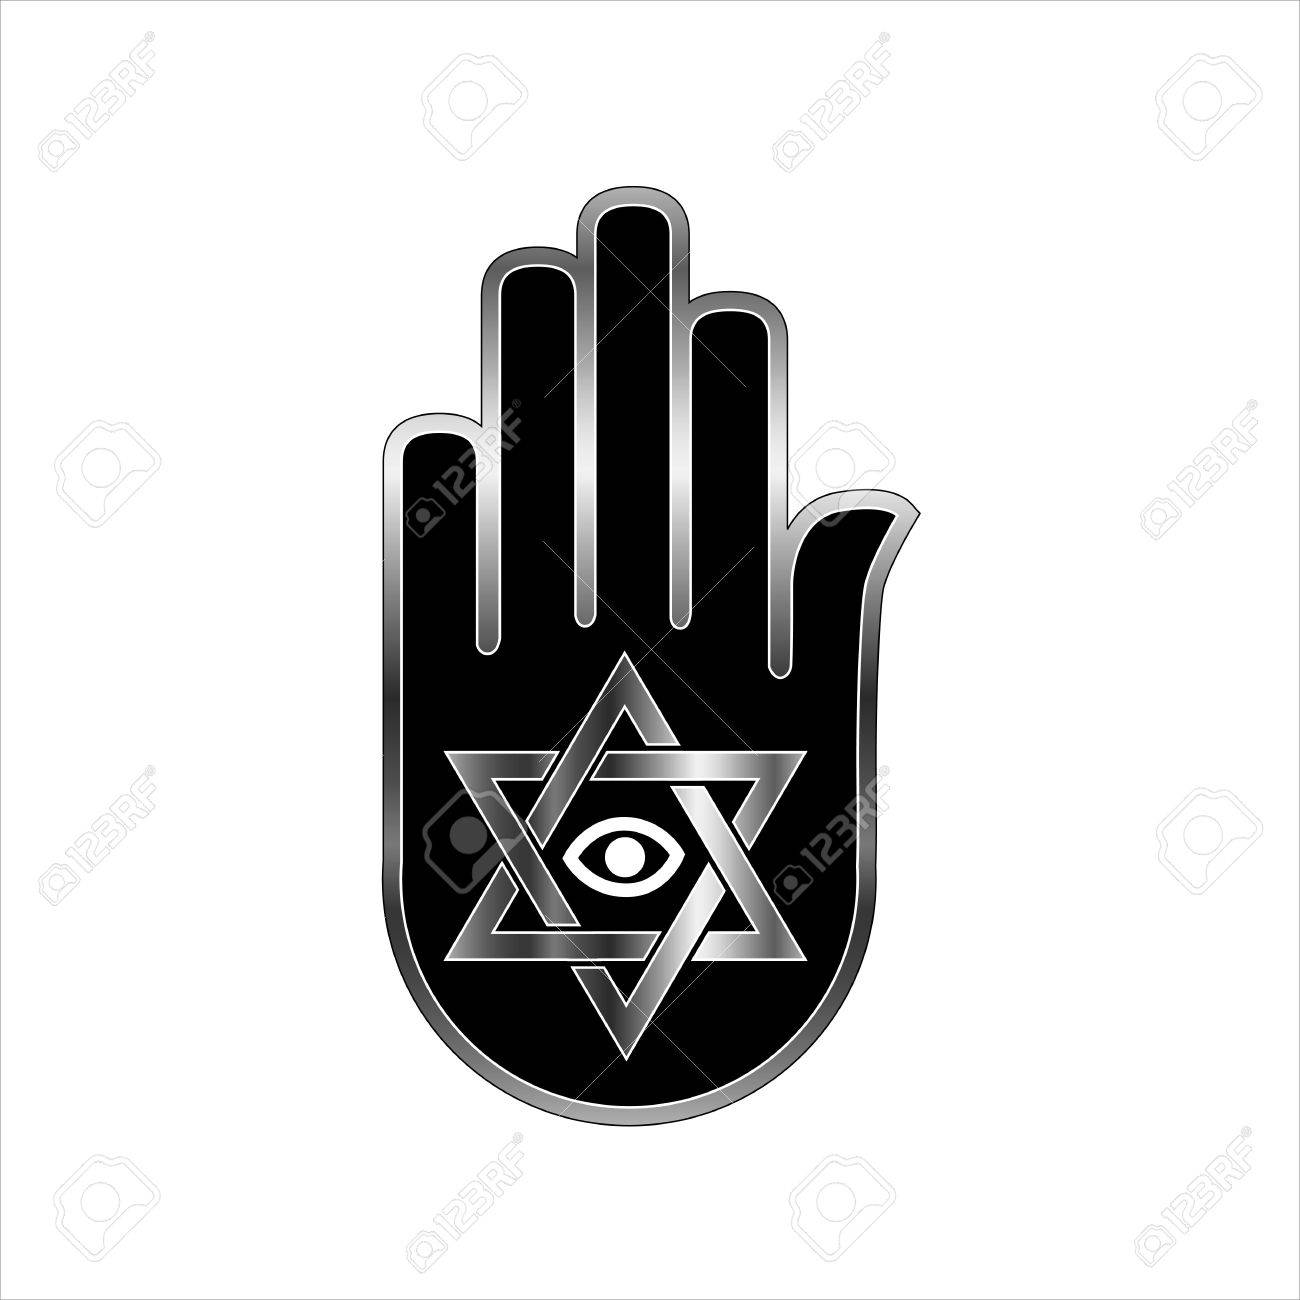 Illustration for psychic or fortune teller star of david on illustration for psychic or fortune teller star of david on ahimsa hand stock vector biocorpaavc Choice Image